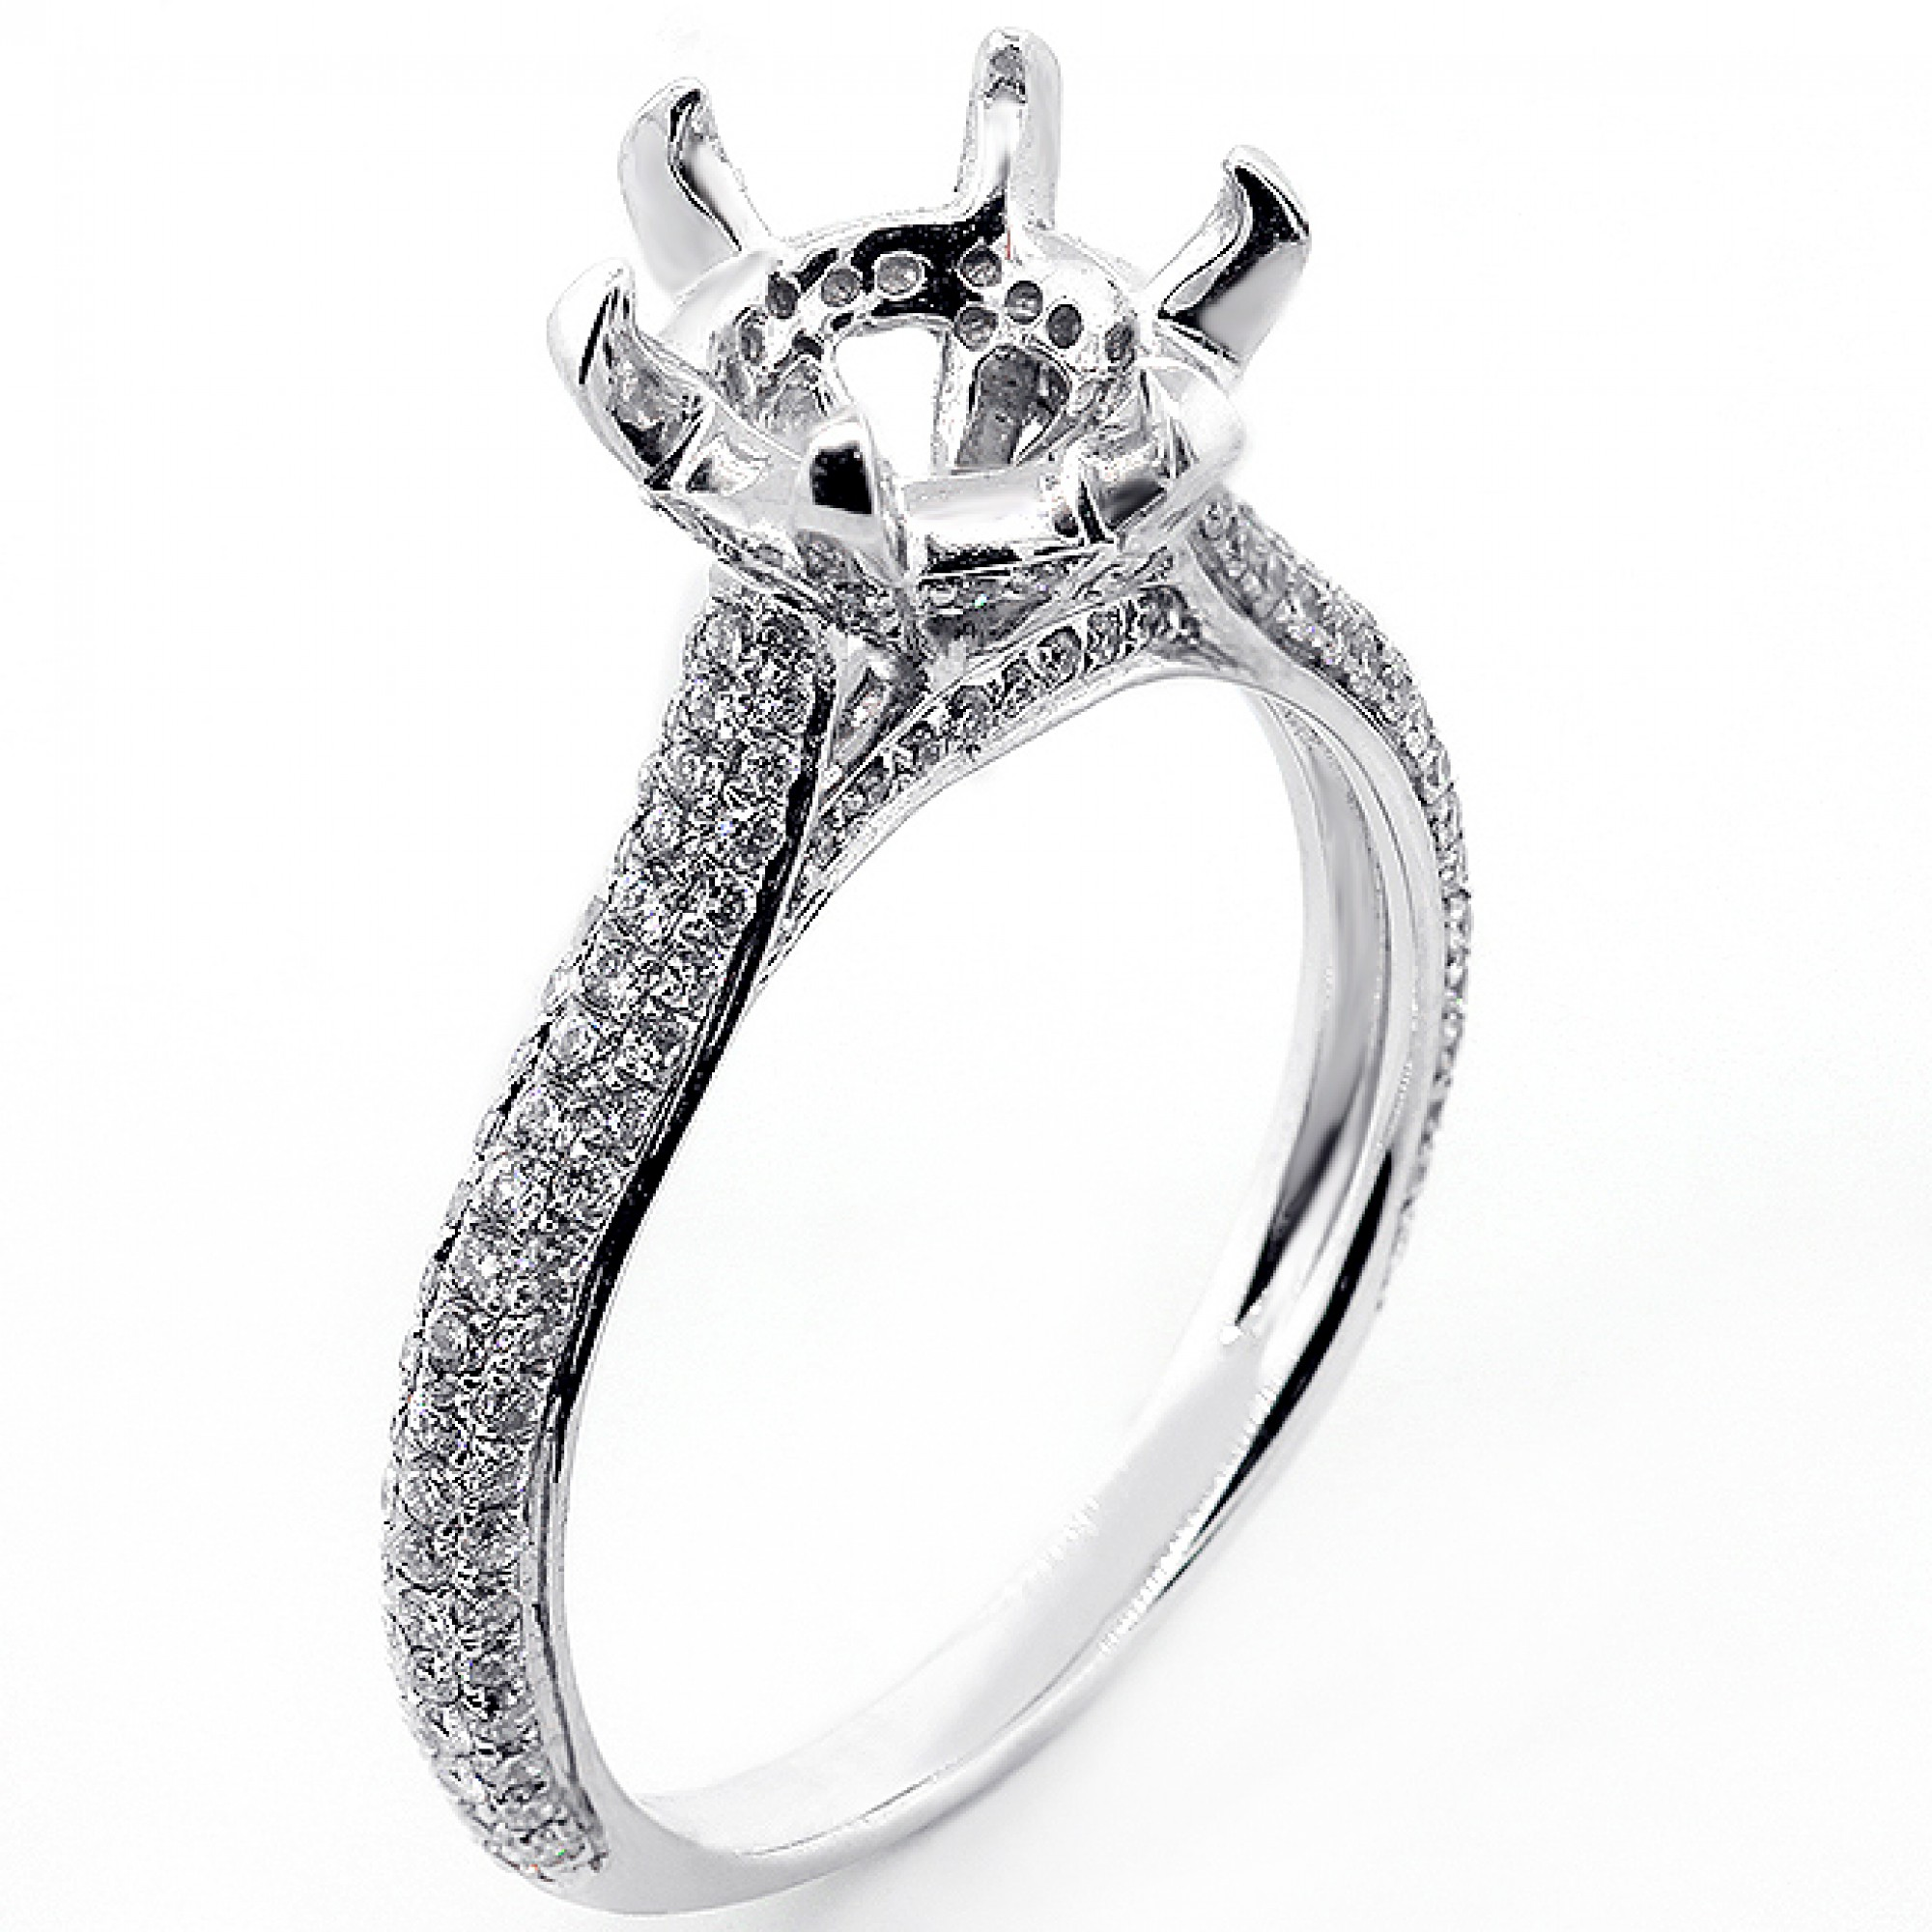 0 52 Cts Six Prong Diamond Engagement Ring Setting Set In 18k Whoite